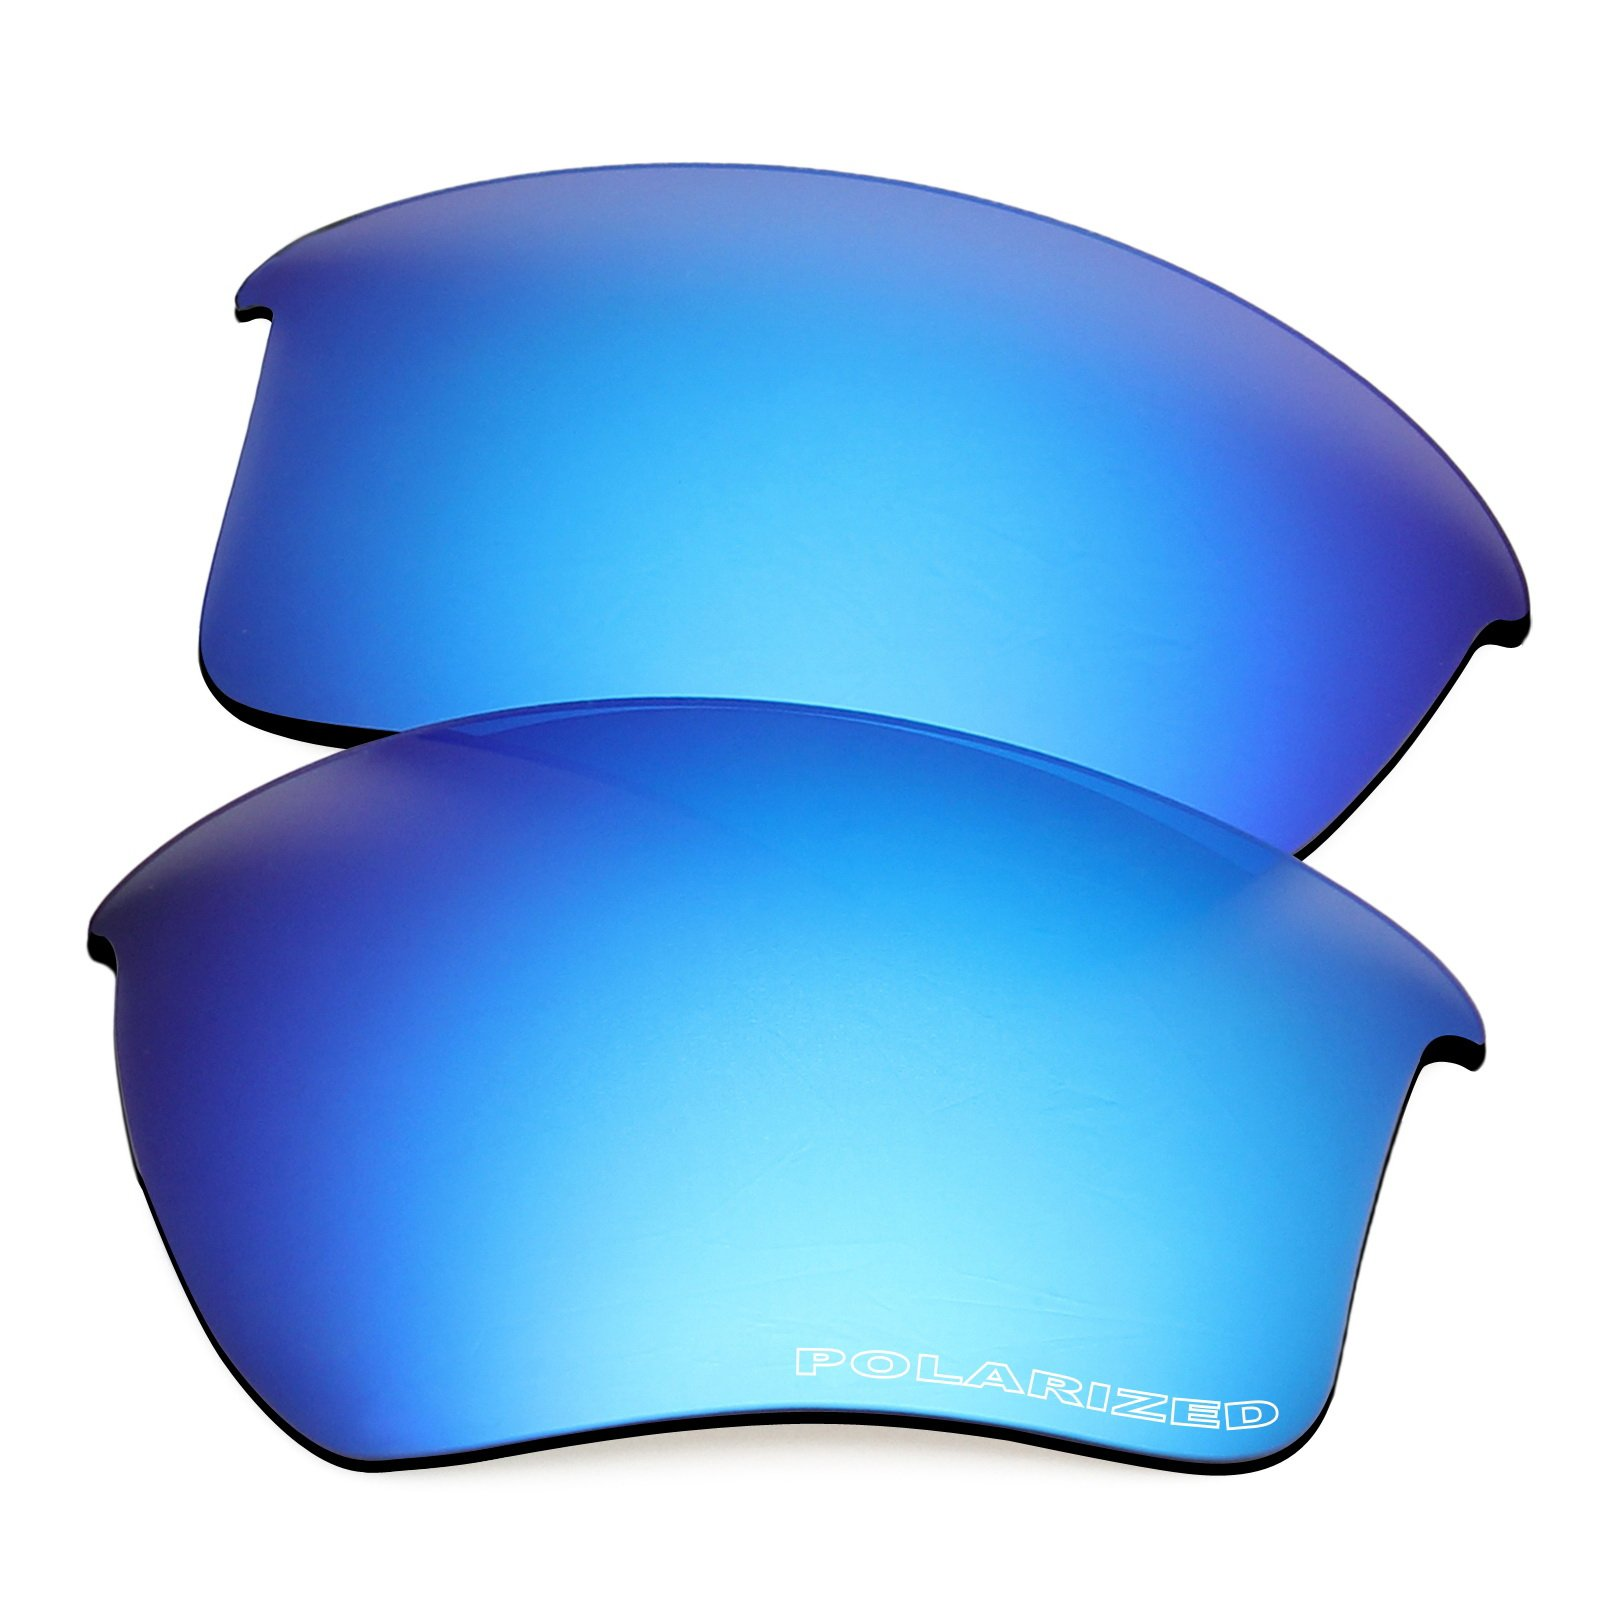 New 1.8mm Thick UV400 Replacement Lenses for Oakley Half Jacket 2.0 XL - Options